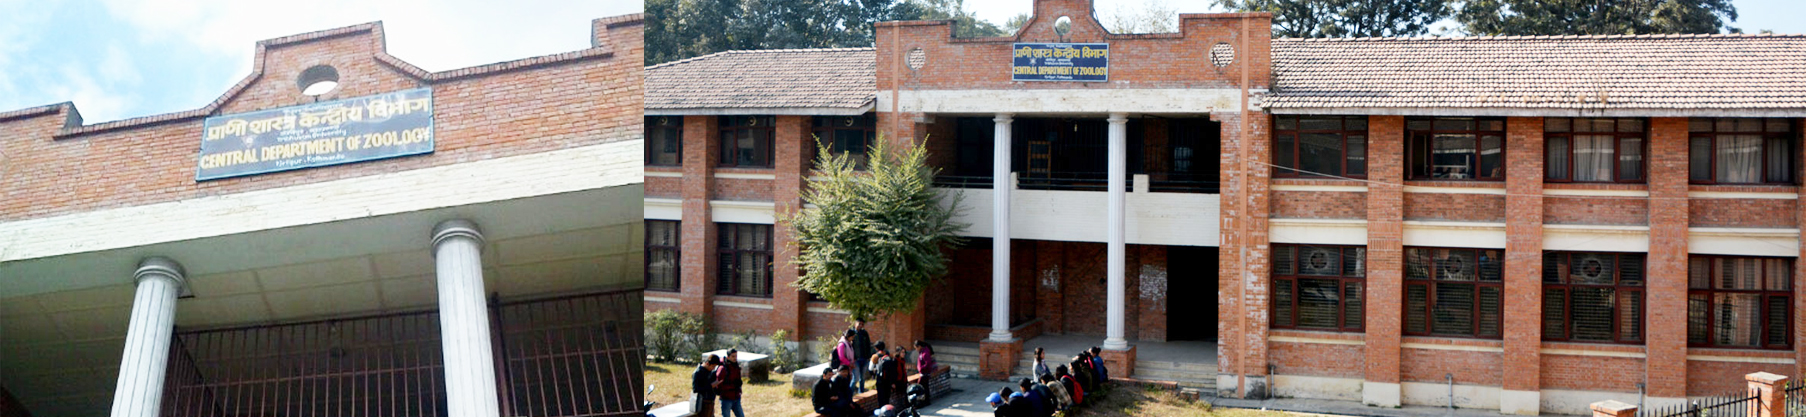 Central Department of Zoology Tribhuvan University